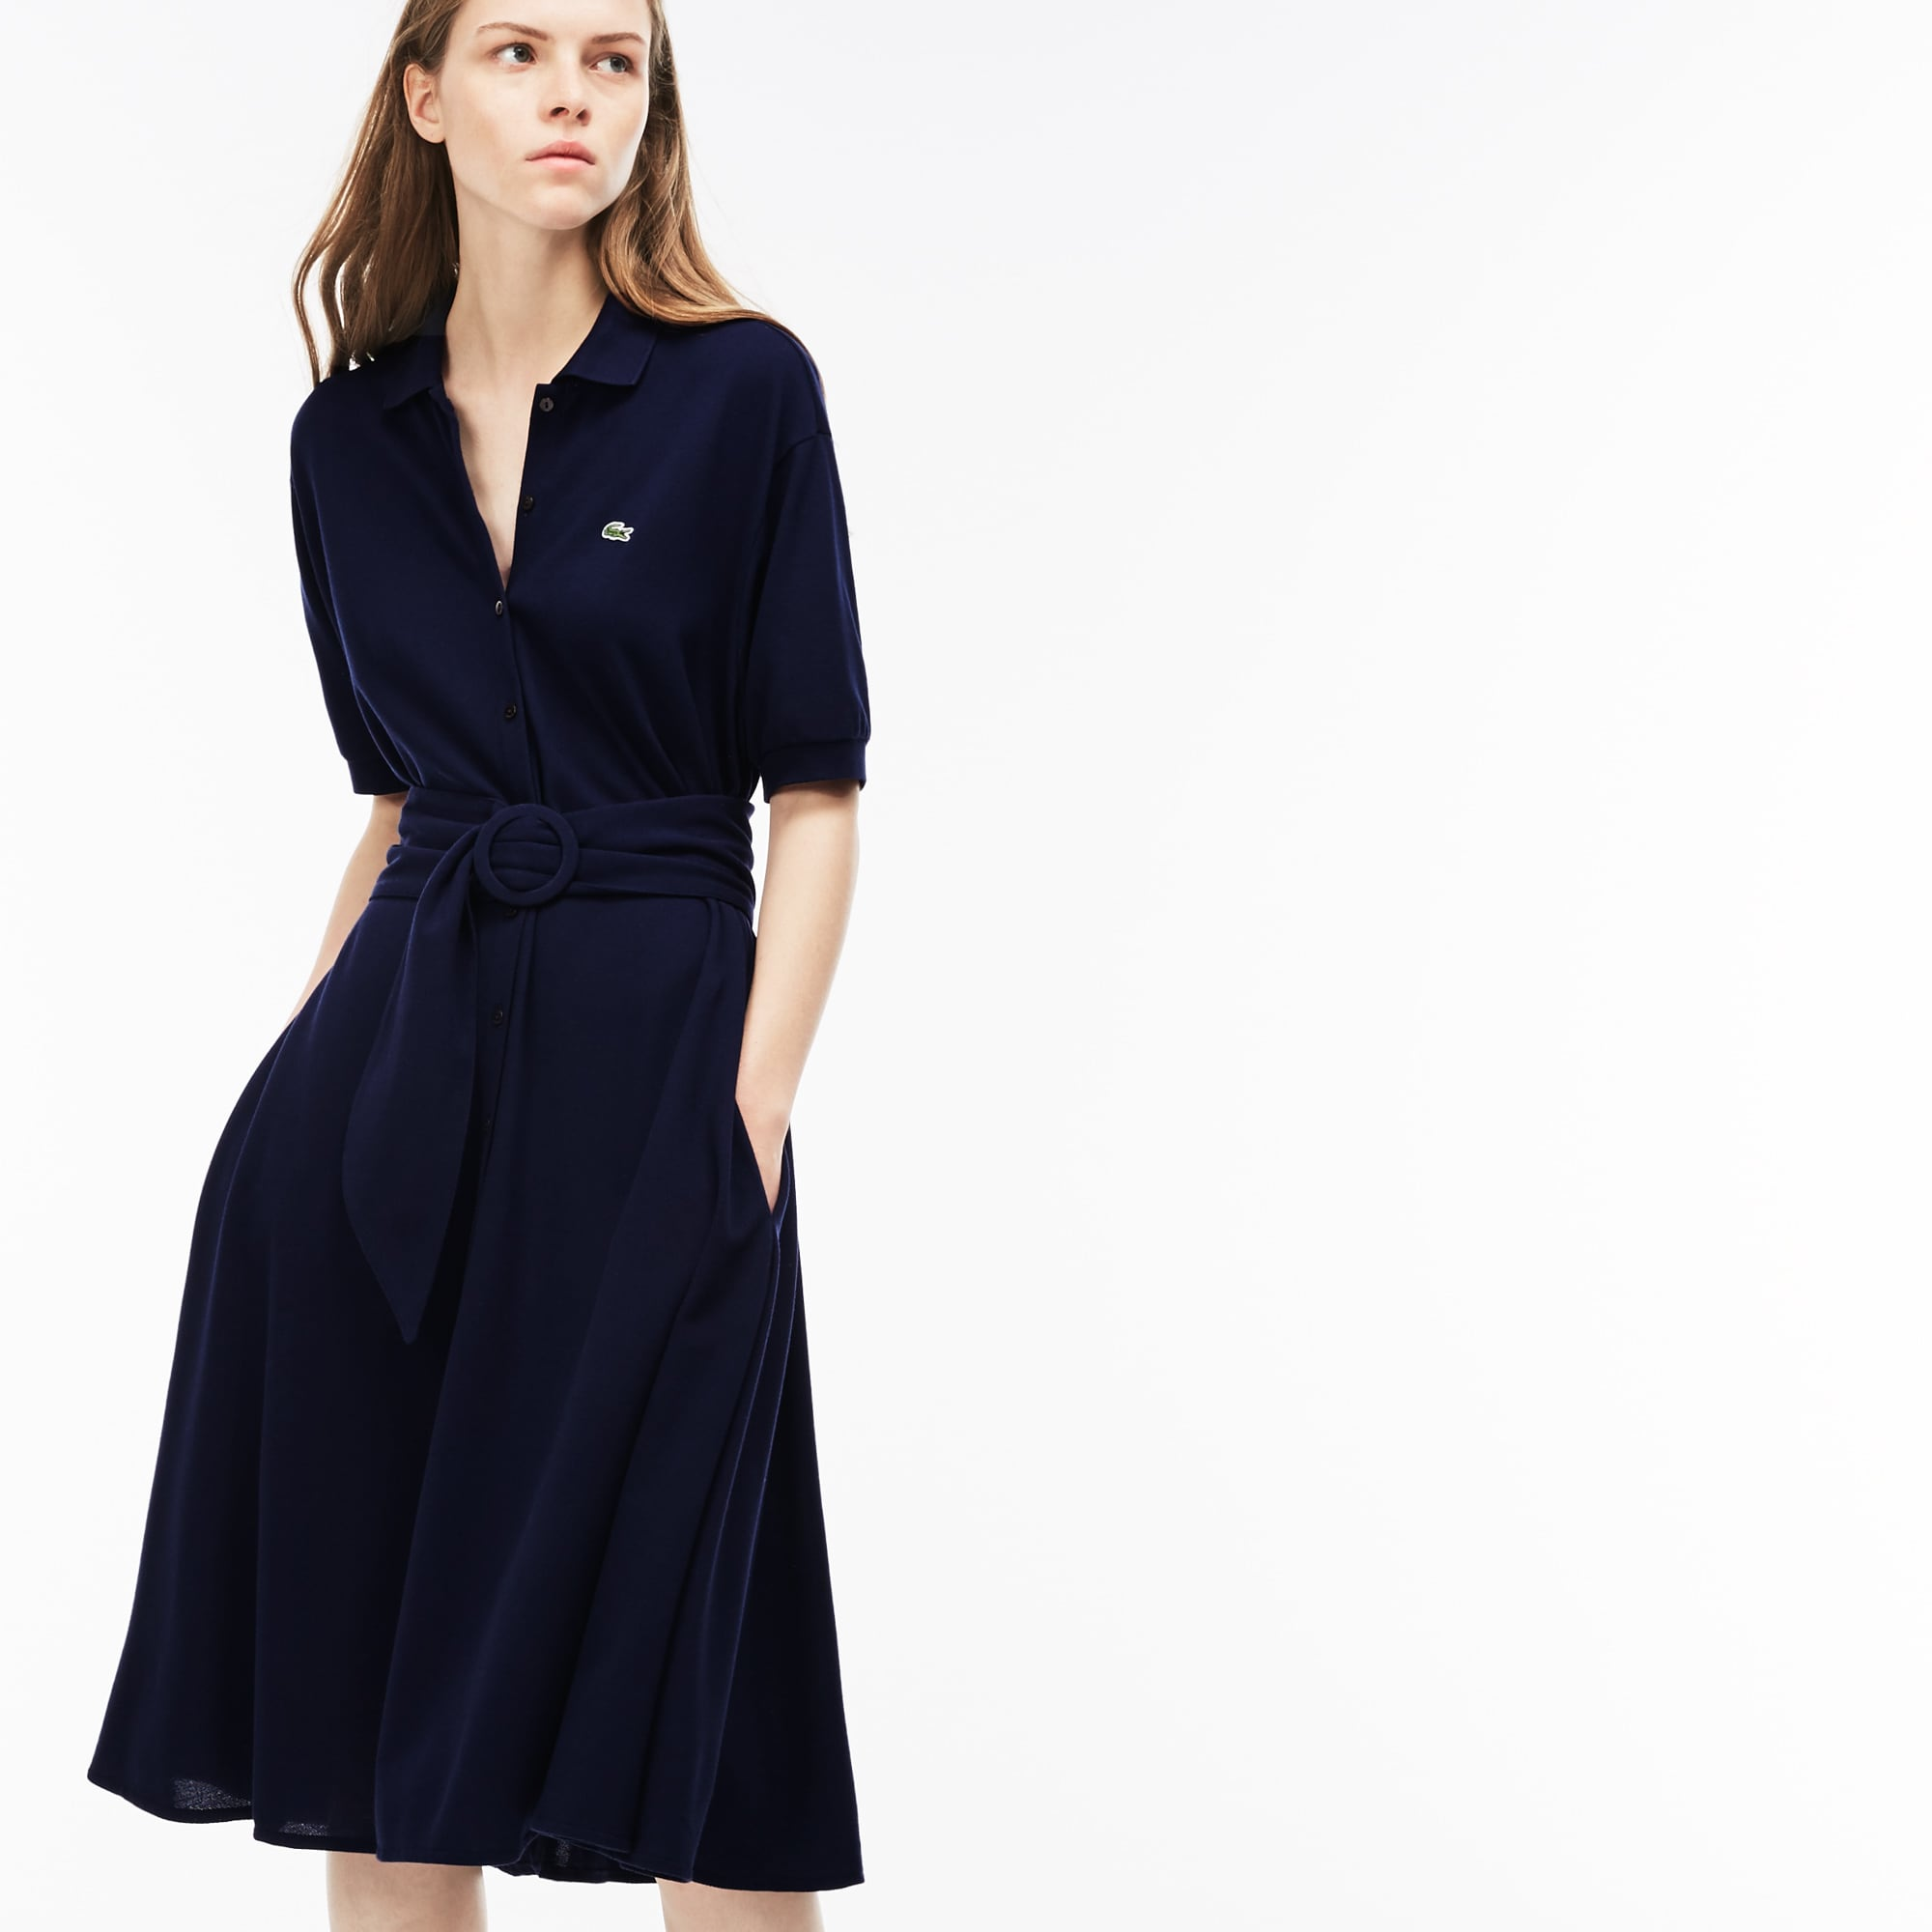 Women's Soft Cotton Polo Dress